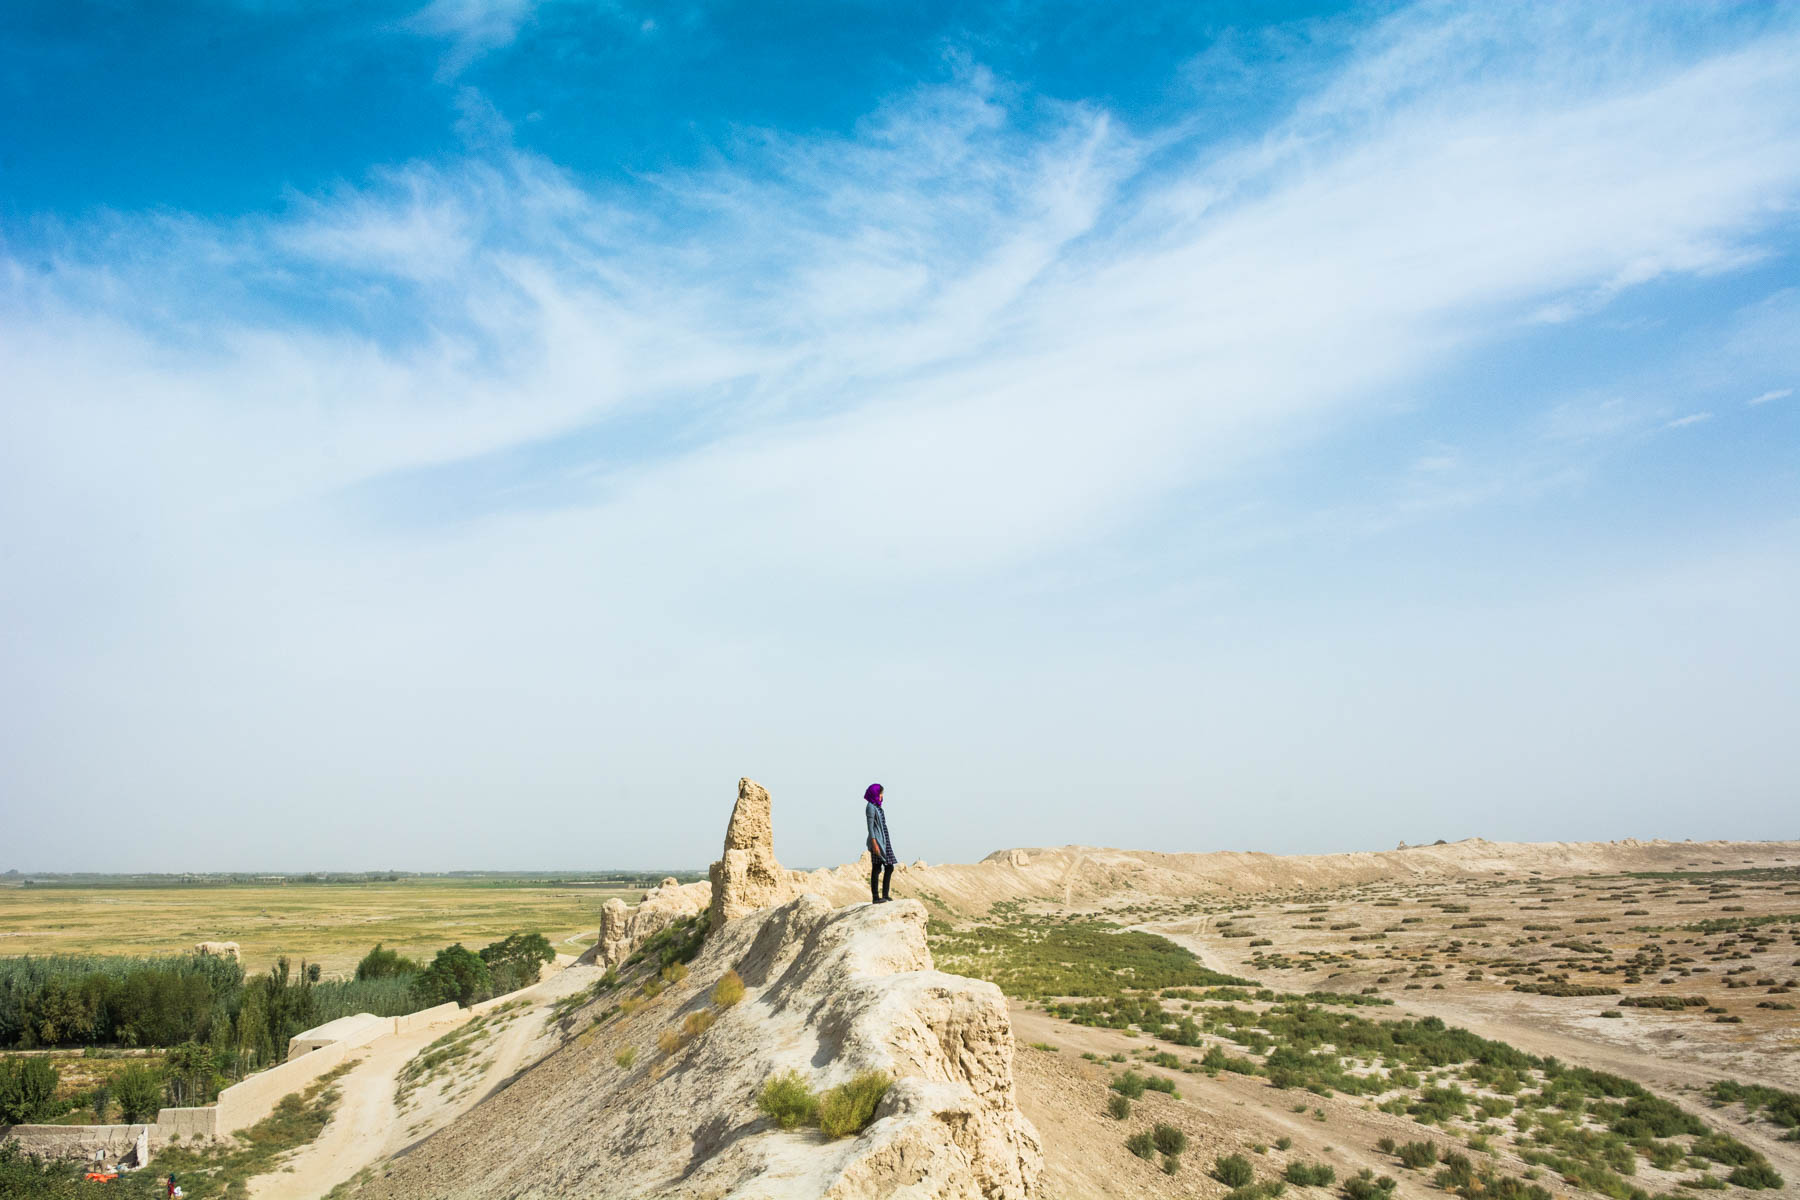 Standing atop the ruins of walls in Old Balkh, Afghanistan - Lost With Purpose